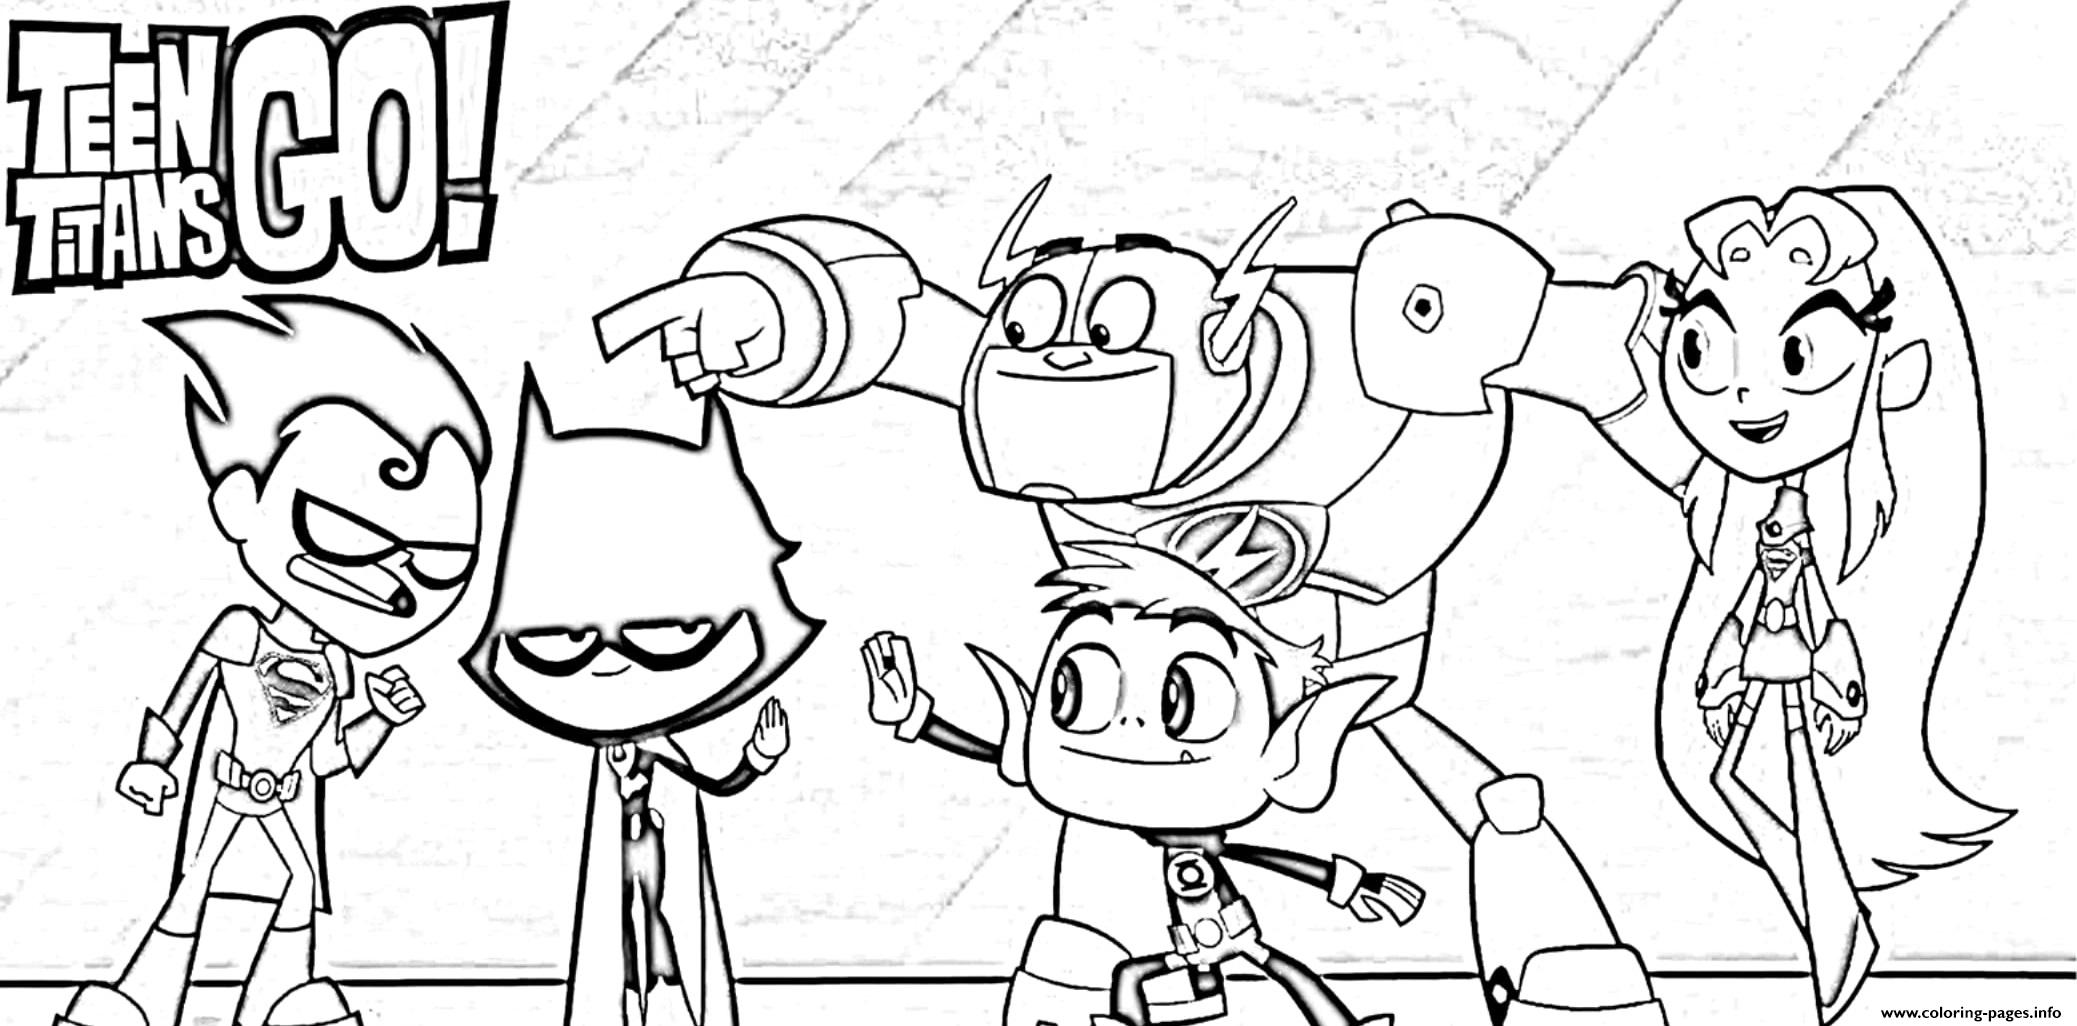 Teen Titan Go Coloring Pages - Coloring Home